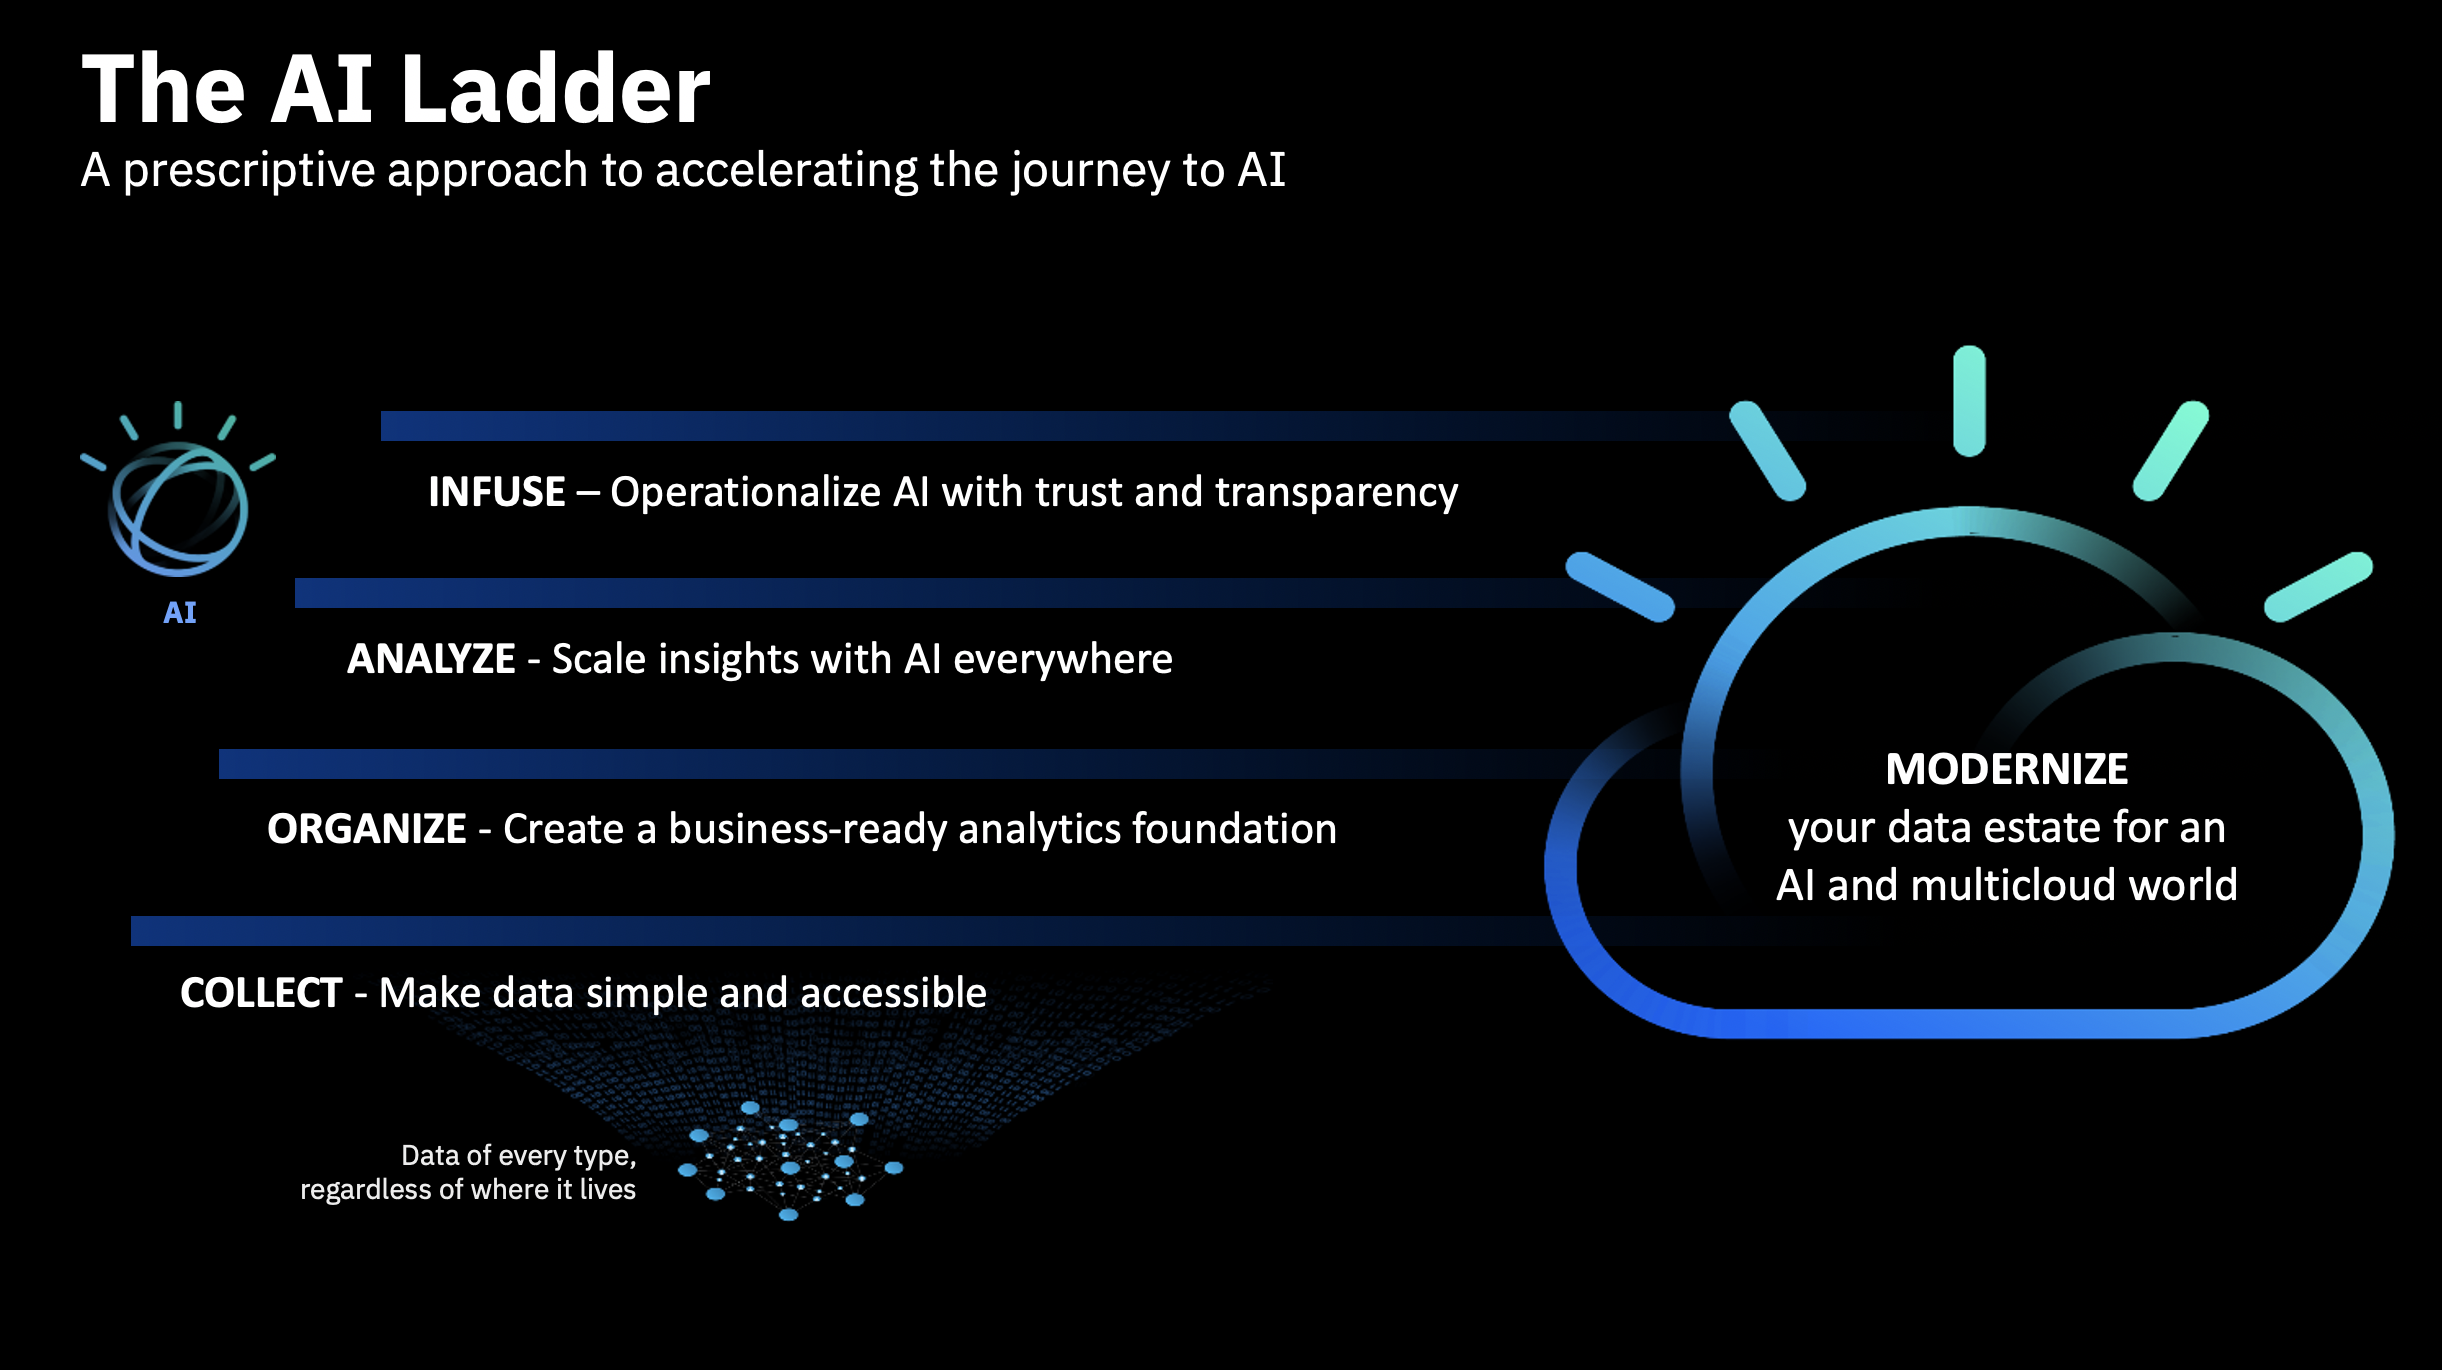 The AI Ladder: Collect, Organize, Analyze, Infuse